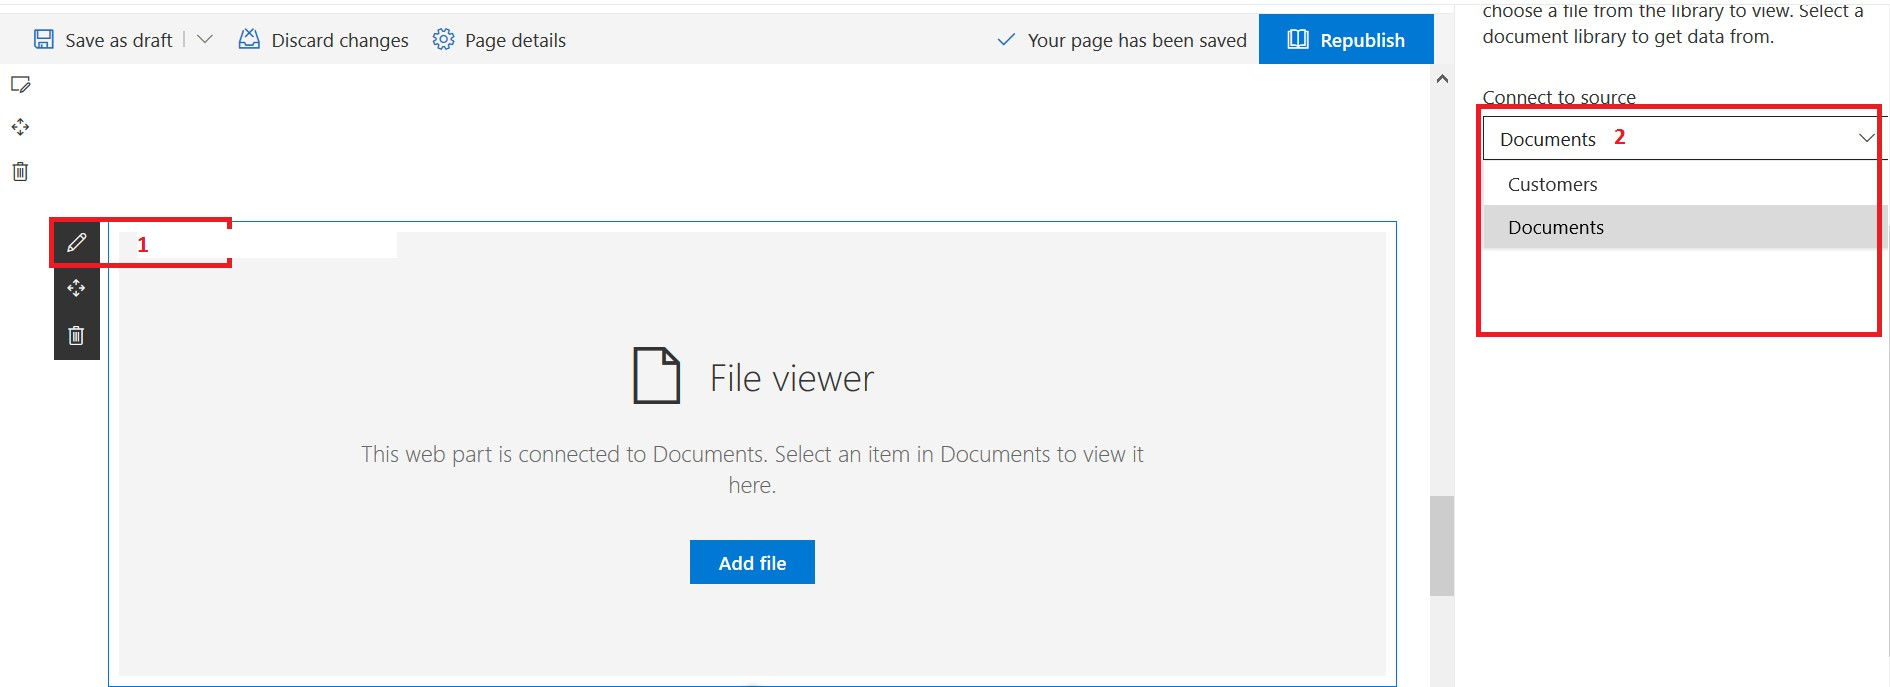 """File viewer web part property to select """"Documents"""" library from connect to source drop-down list"""